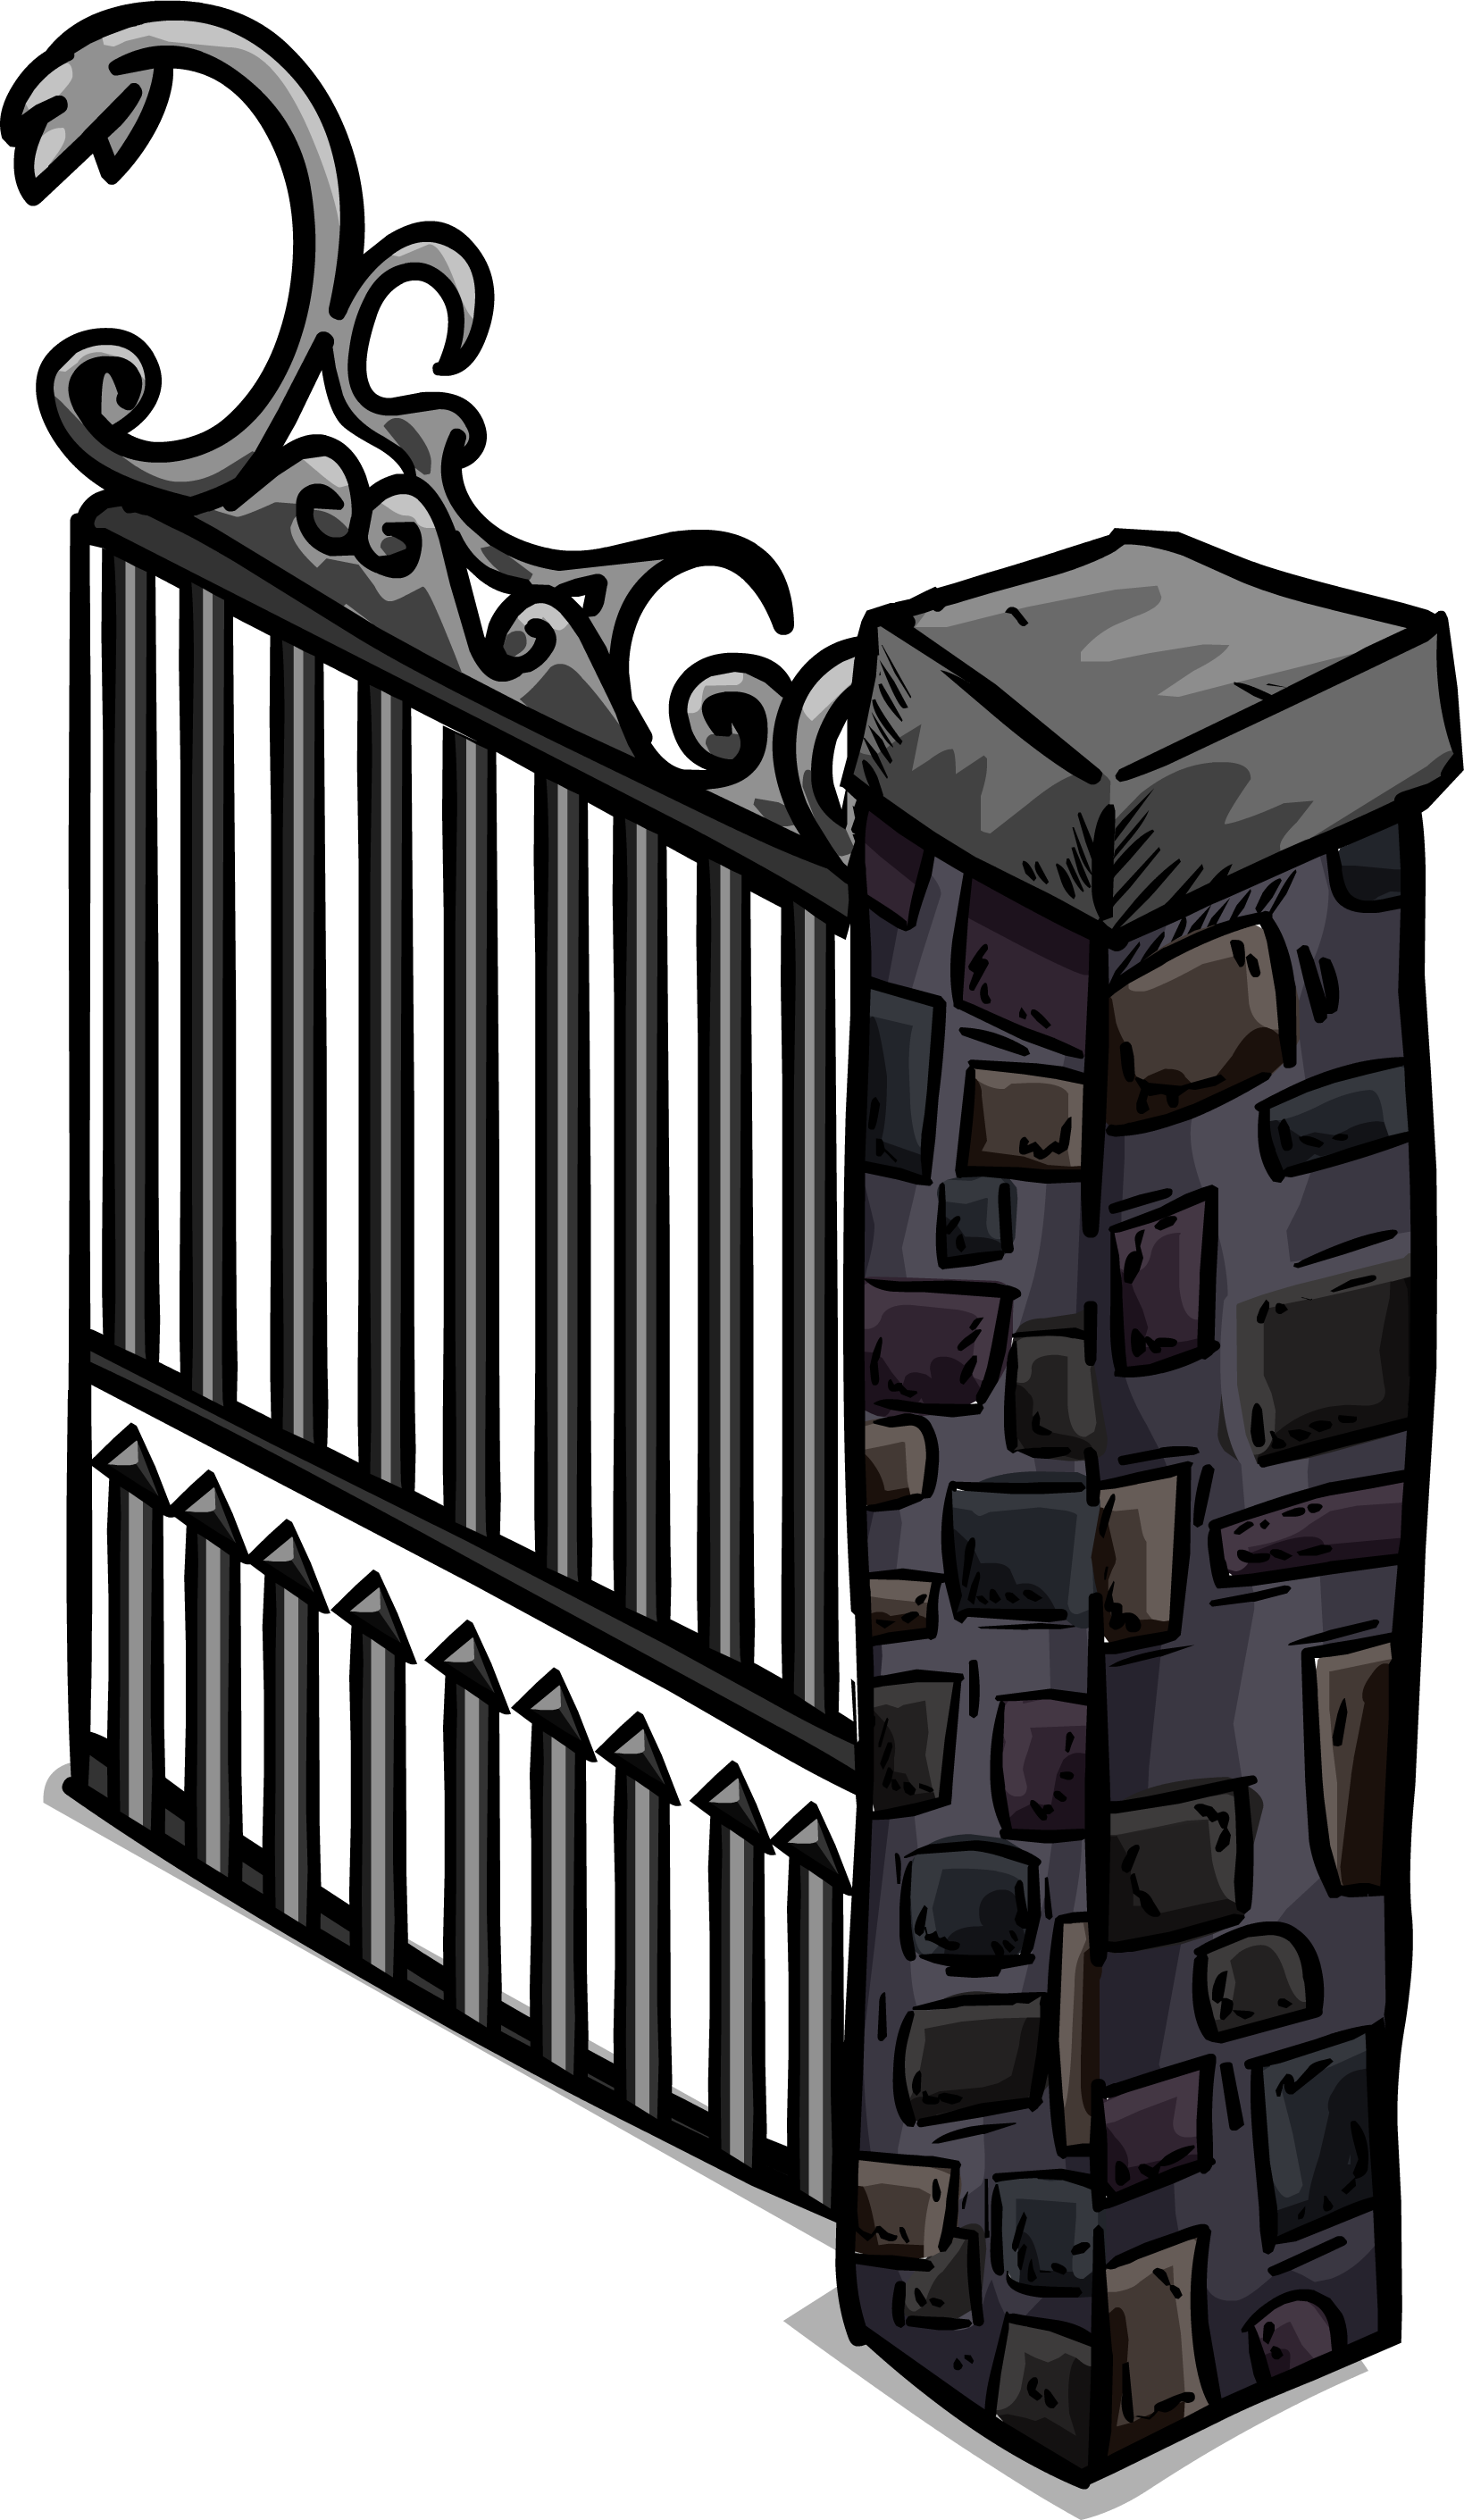 Gate clipart iron gate. Image sprite png club